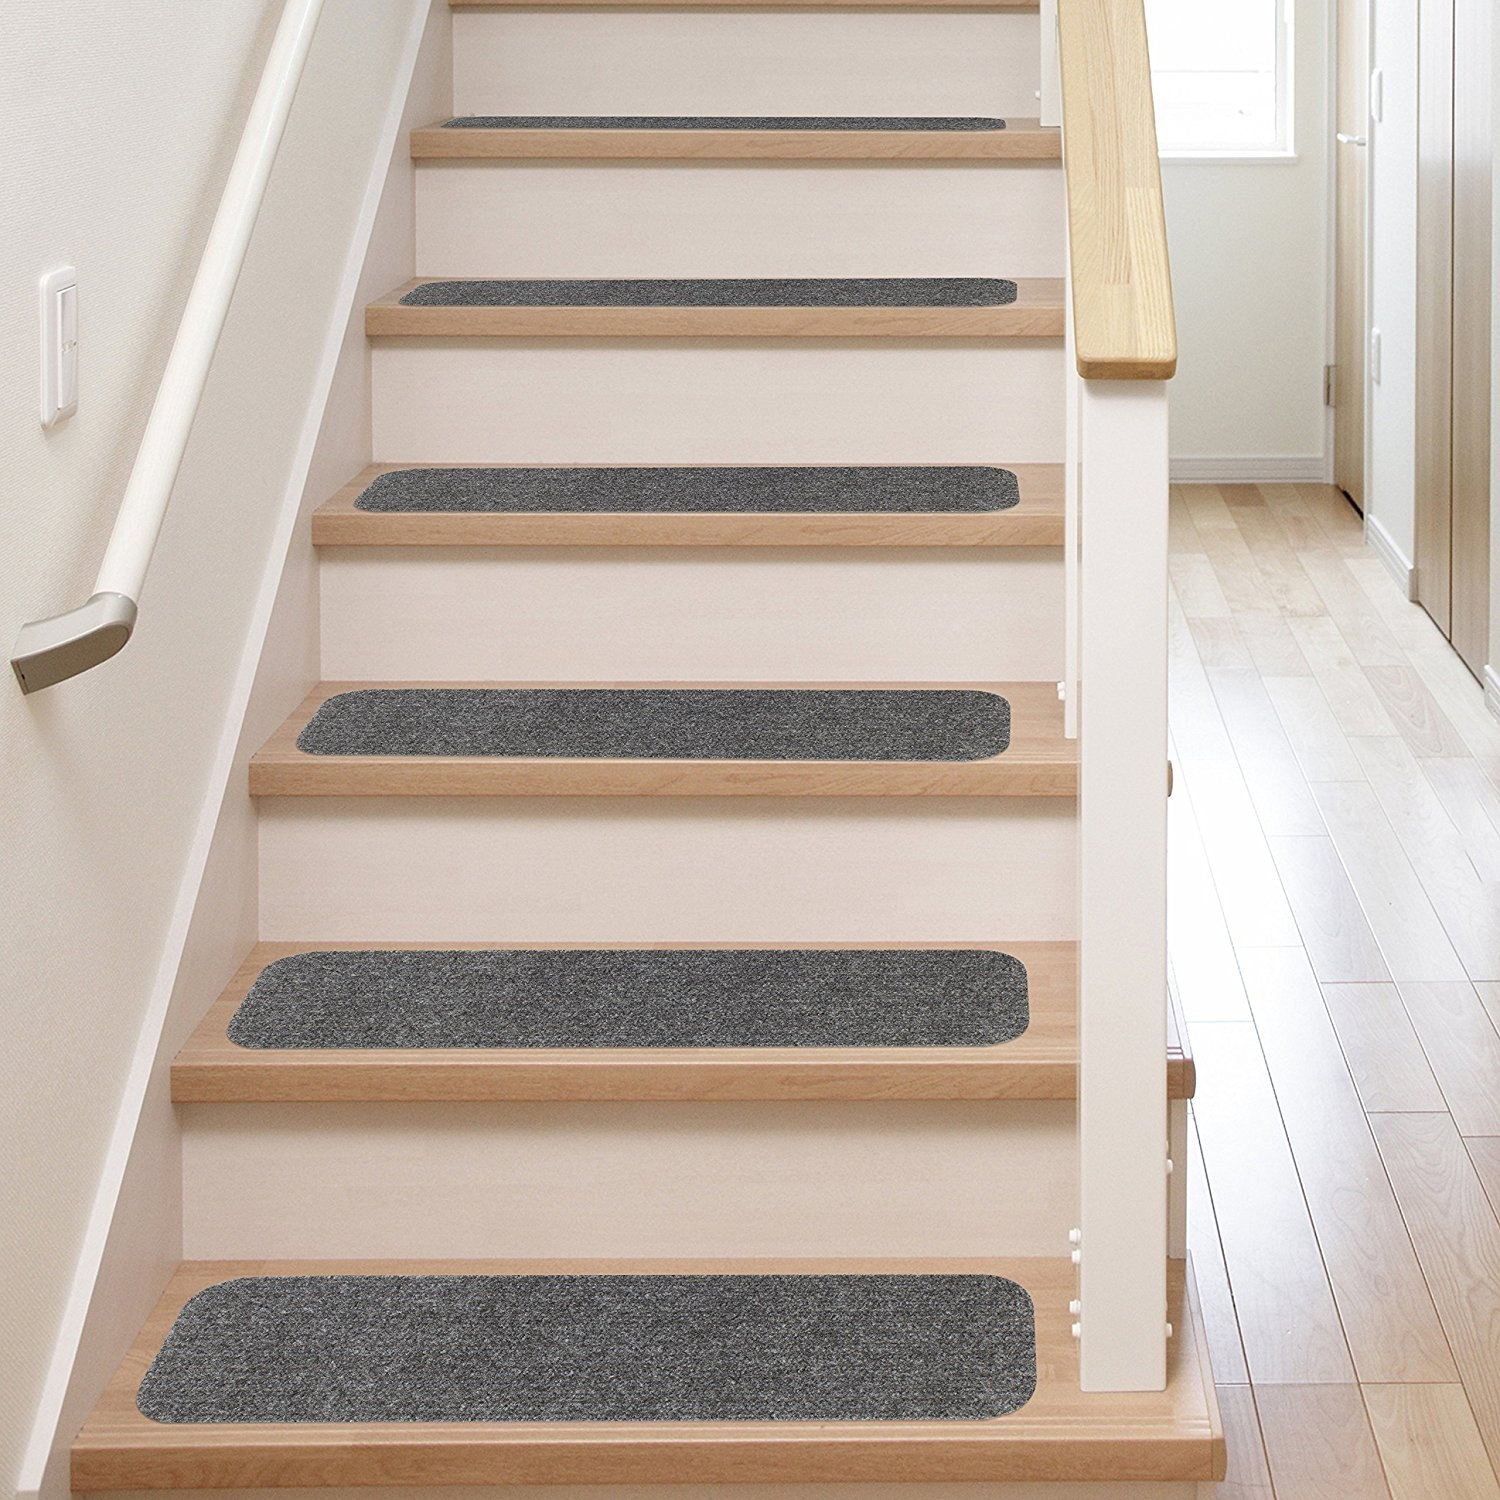 13 Stair Treads Non Slip Carpet Pads Easy Tape Installation Inside Stair Tread Rug Pads (View 6 of 15)